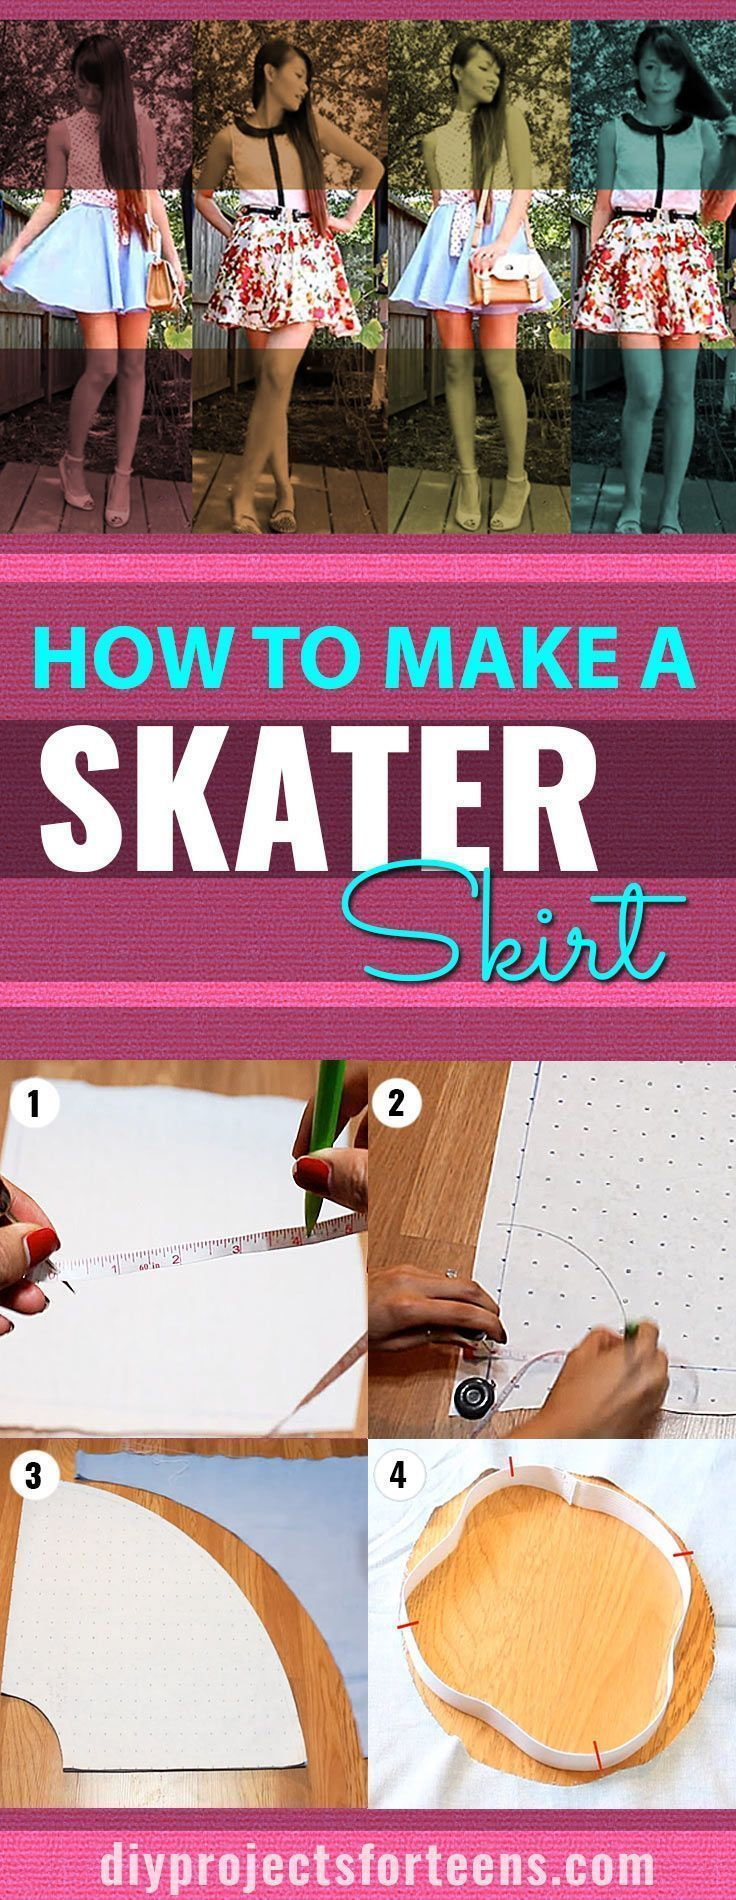 how to make a skater skirt pattern